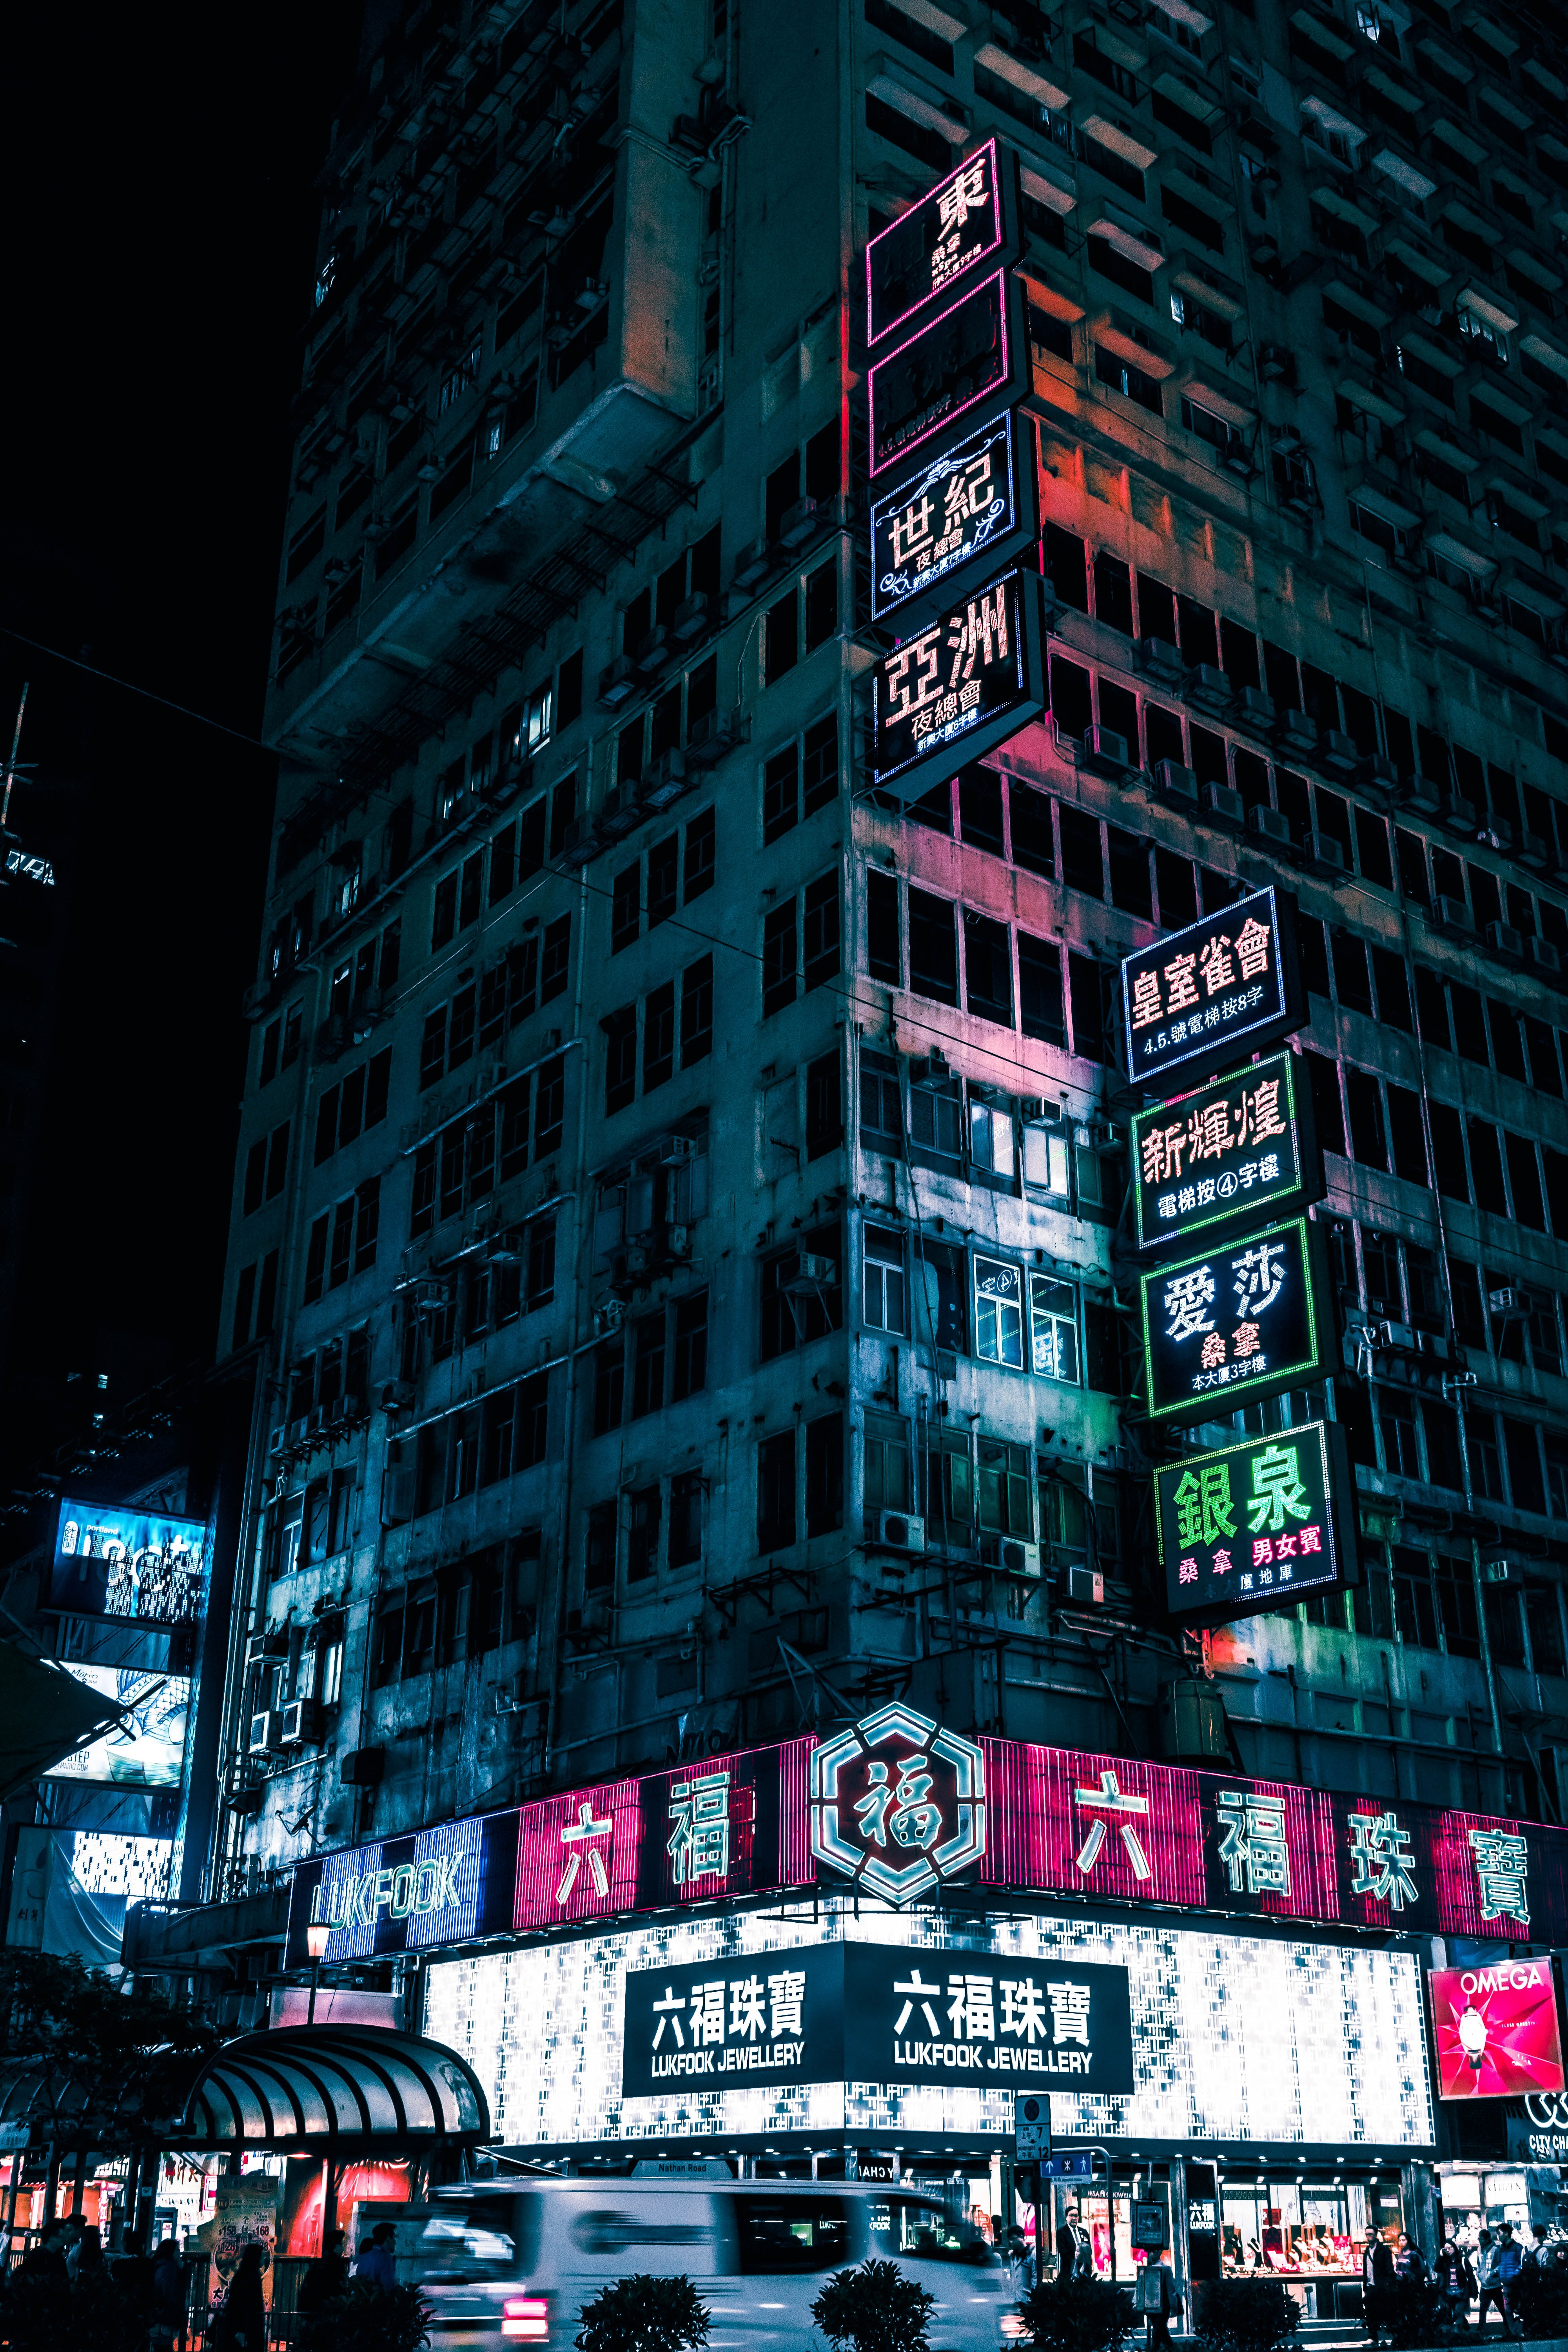 high-rise building with lighted neon signage